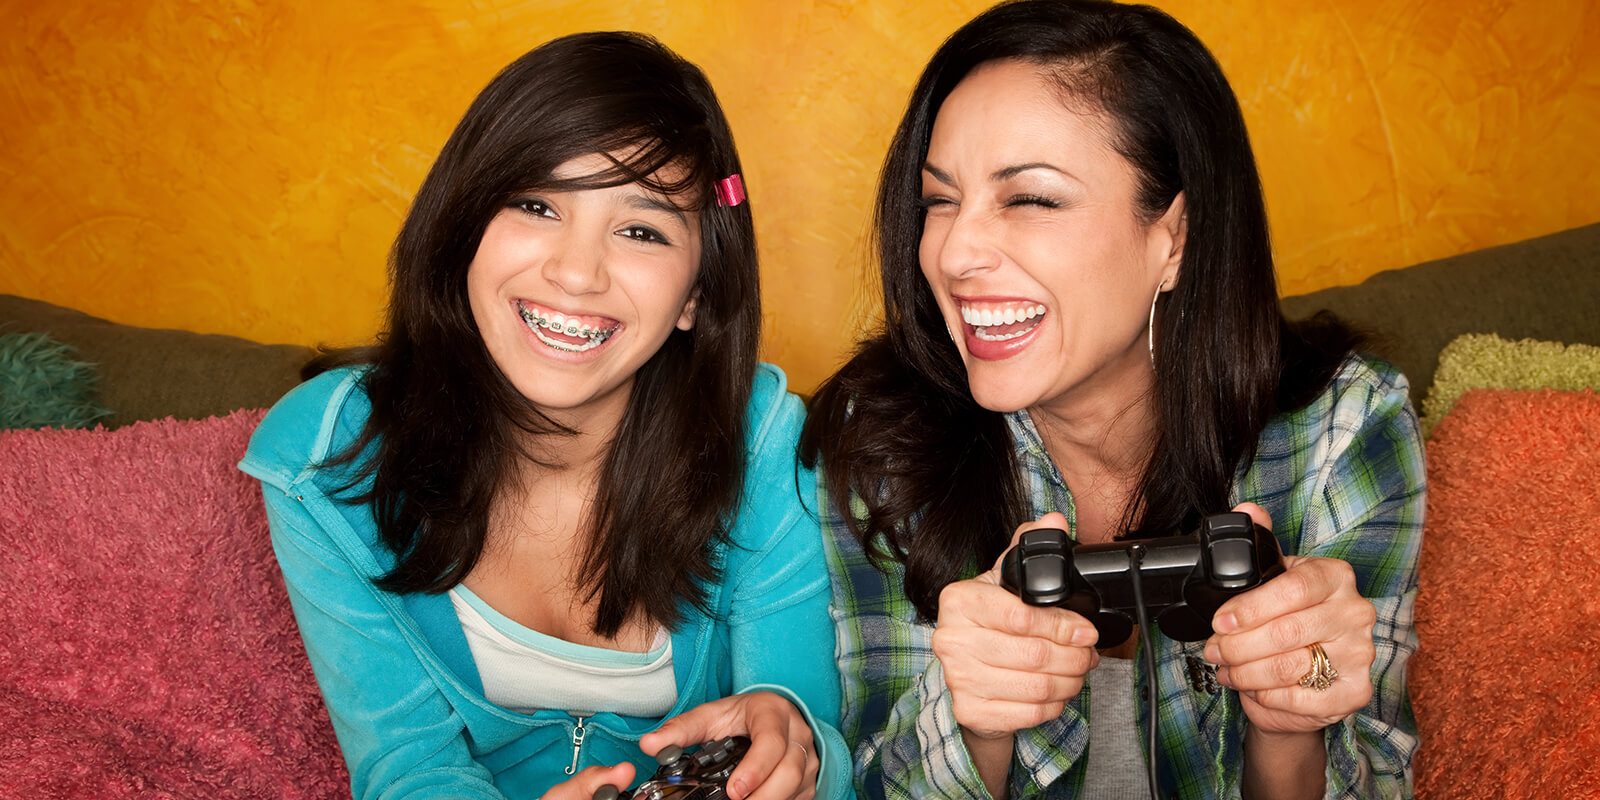 Mom and Daughter with Braces Playing Games